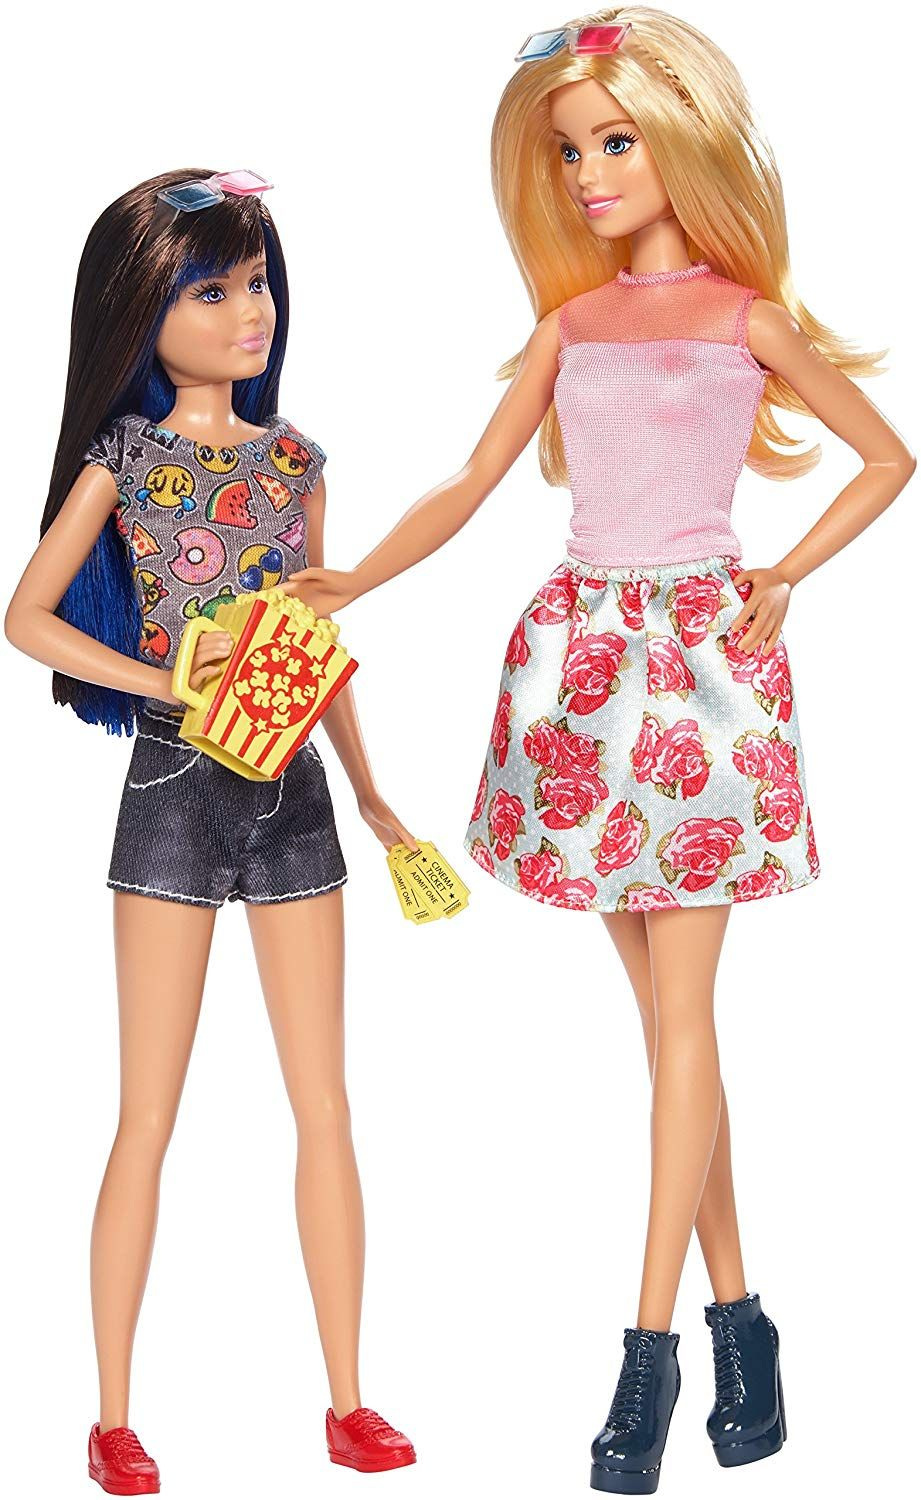 Two Barbie Sister Dolls Together In One Pack Double The